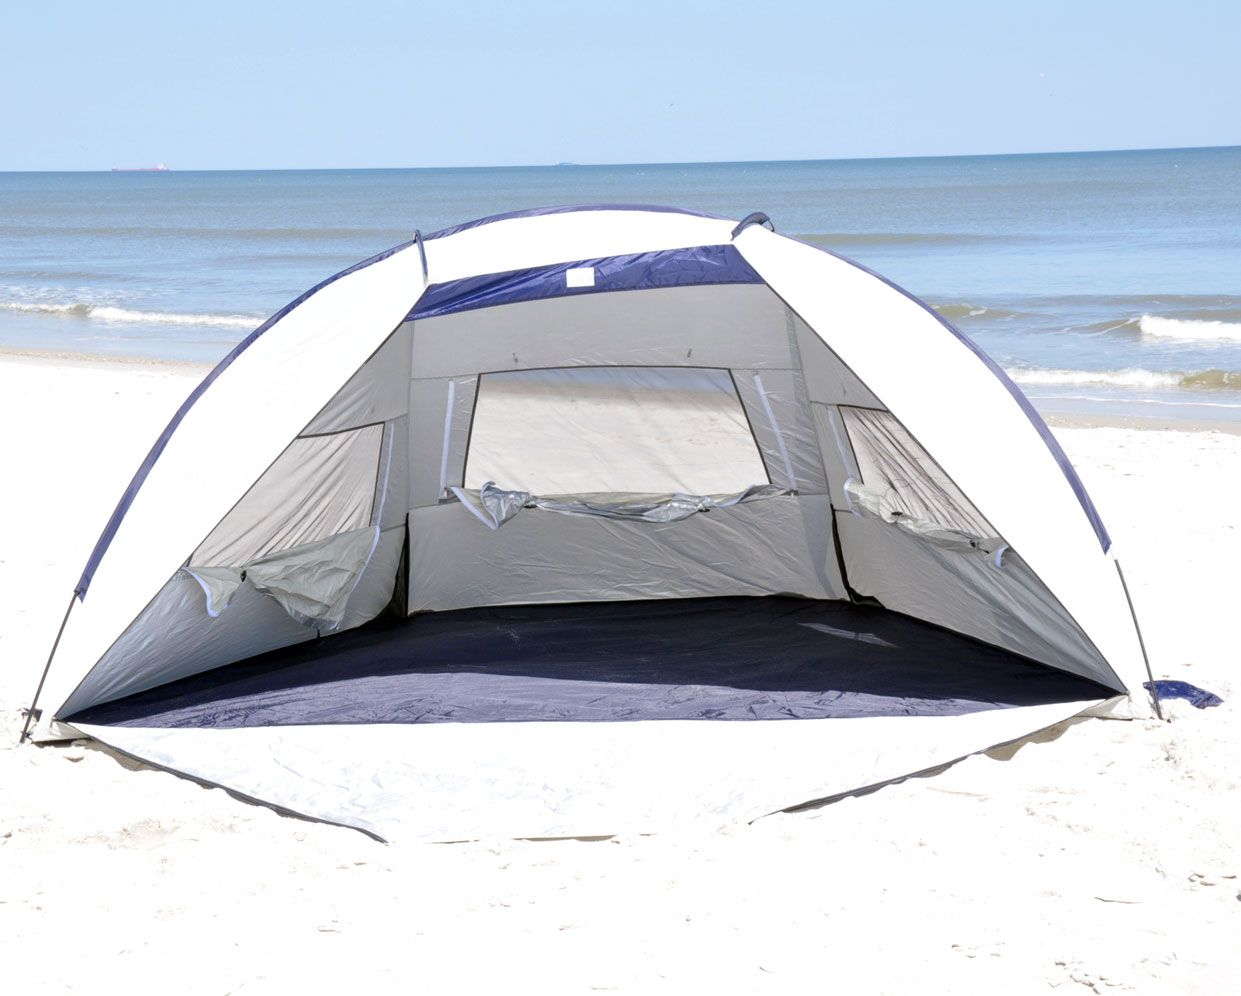 Solarguard Jumbo Deluxe Beach Shelter With Ventilation Panels And Door Upf 120 Toys Games Outdoor Play Sand Beach Toy Beach Tent Tent Beach Cabana